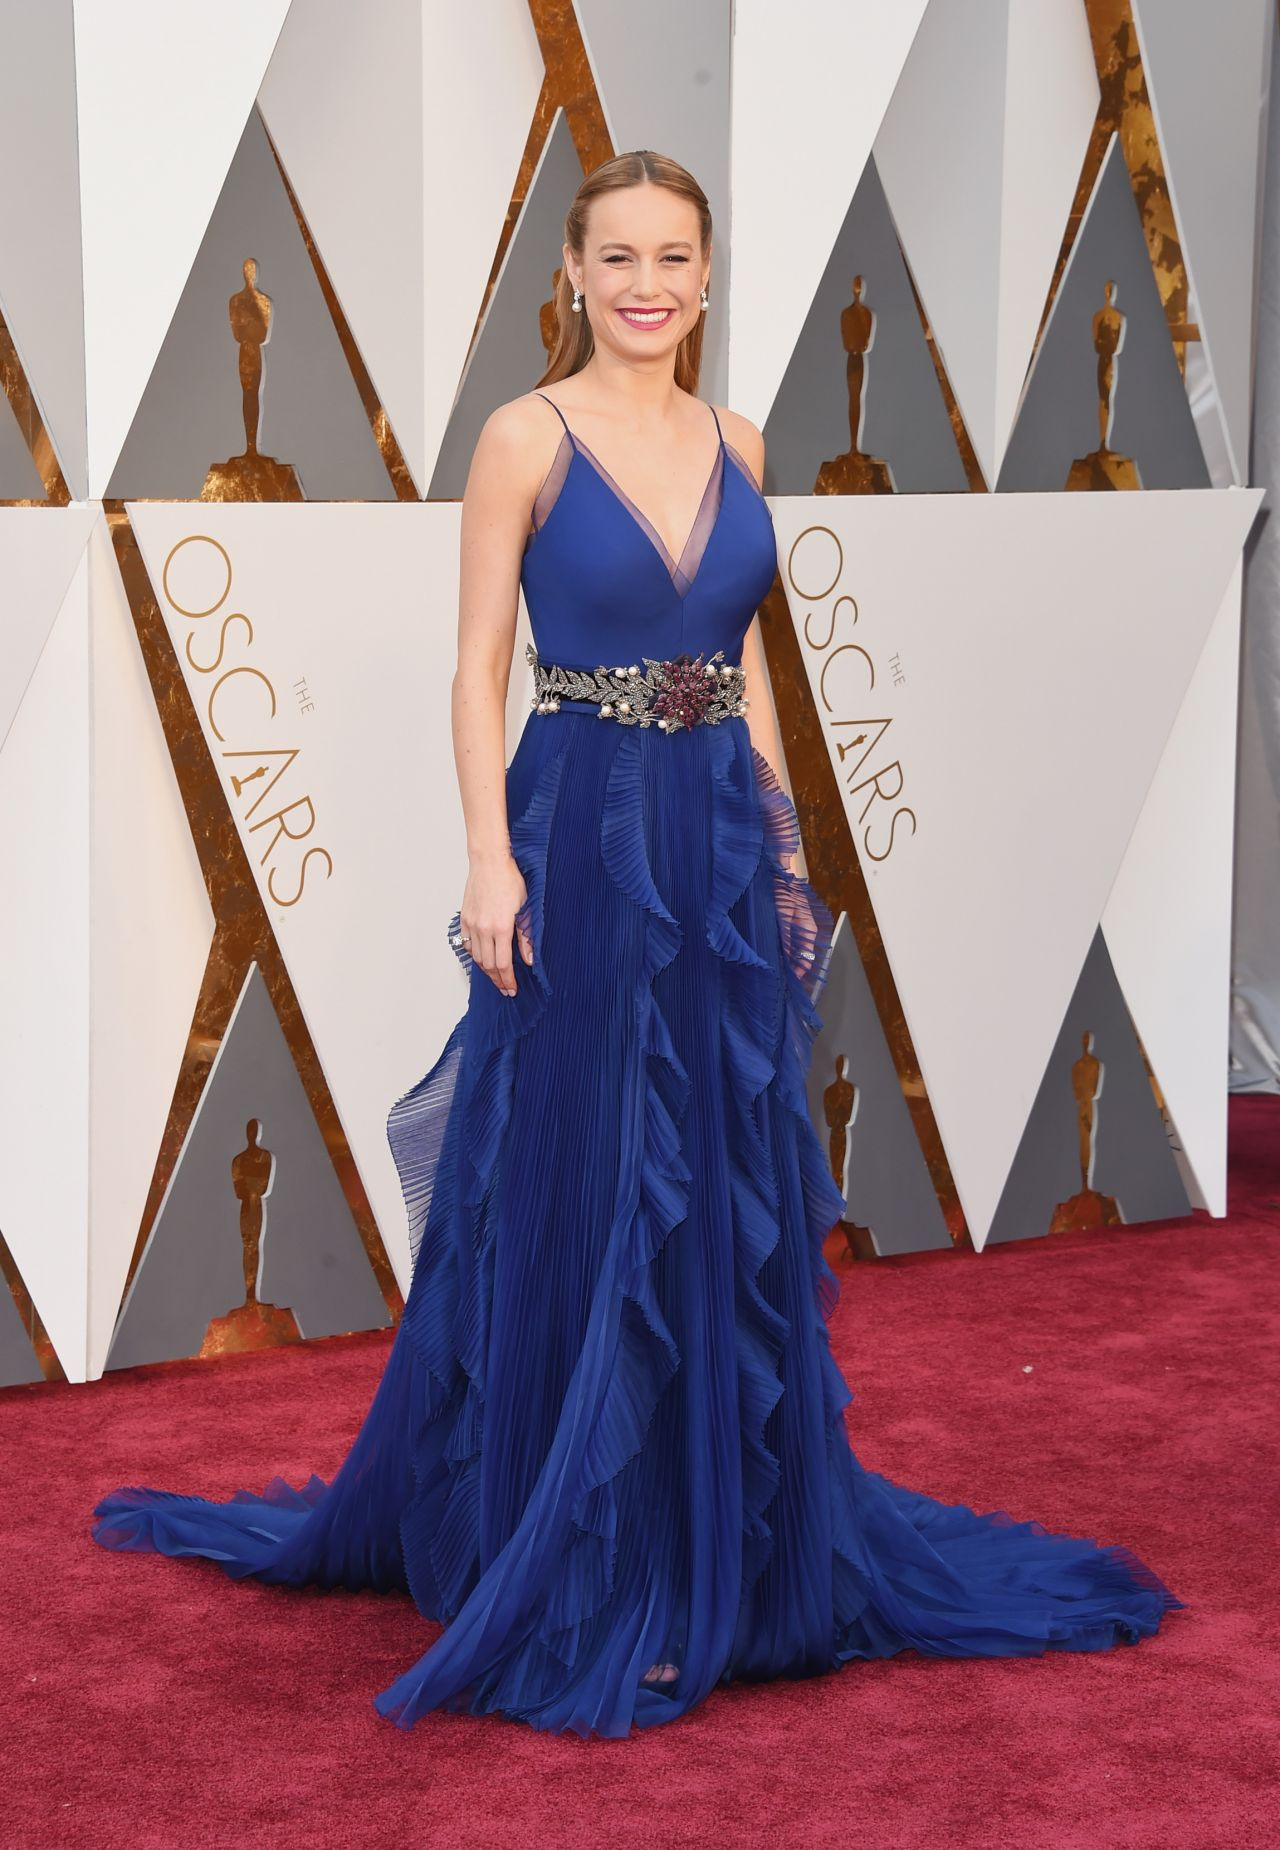 brie-larson-oscars-2016-in-hollywood-ca-2-28-2016-2